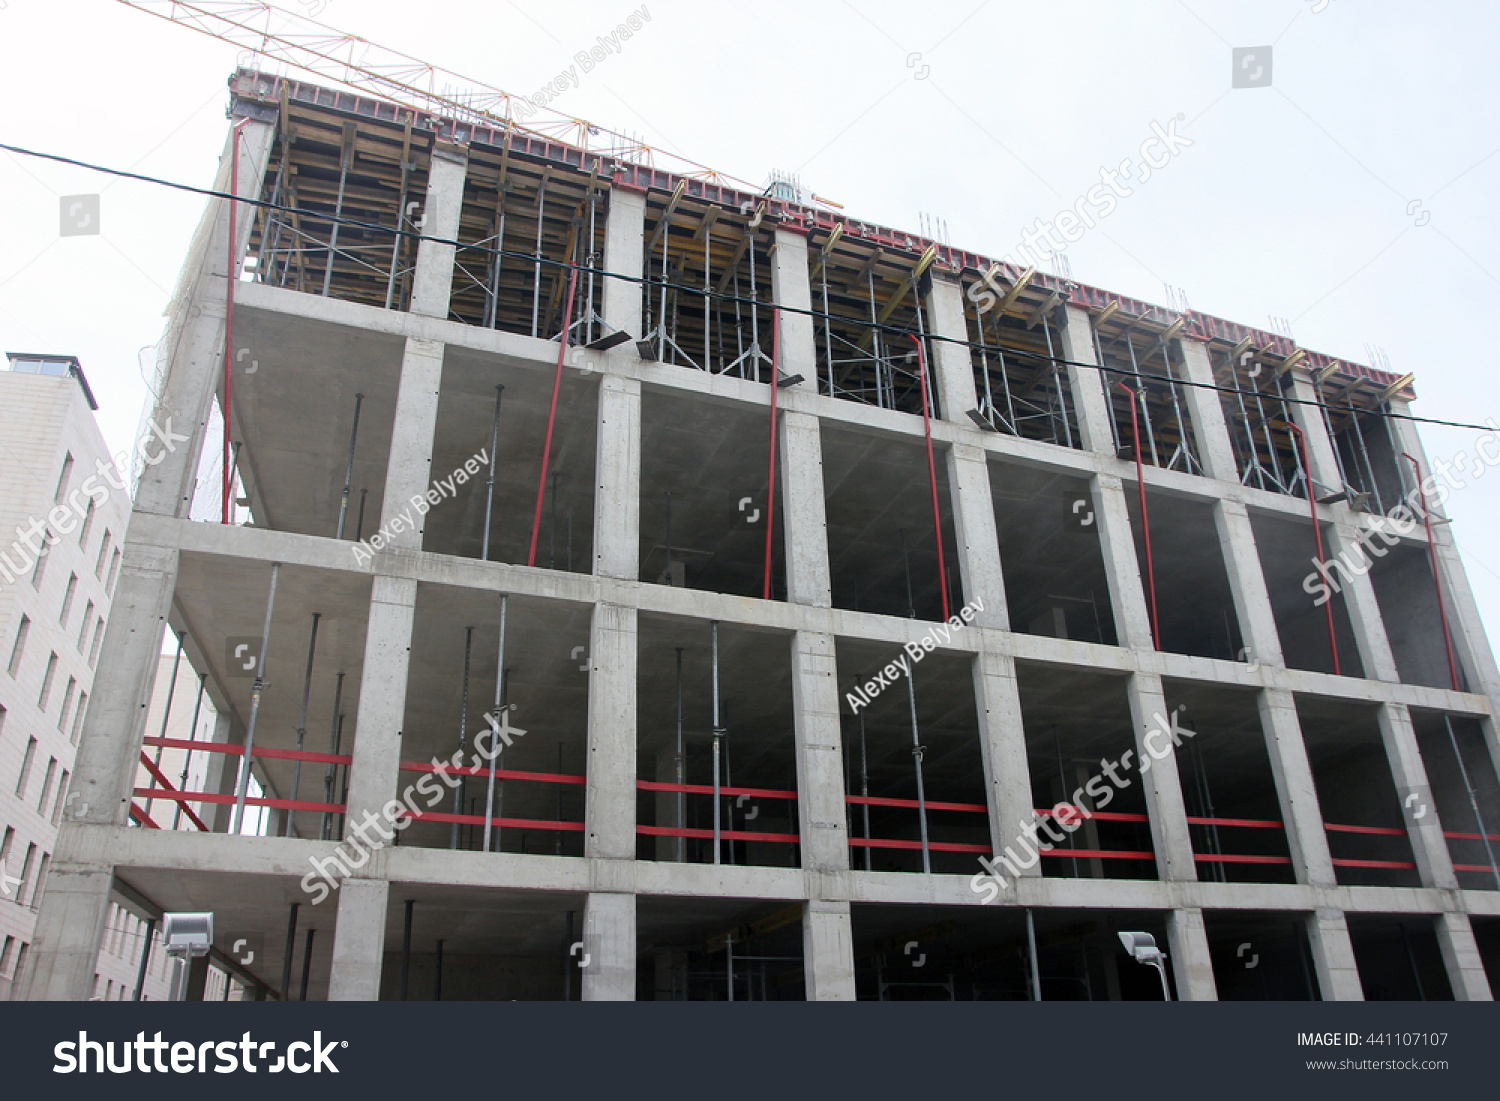 Masonry Building Framed : Reinforced concrete frame construction design